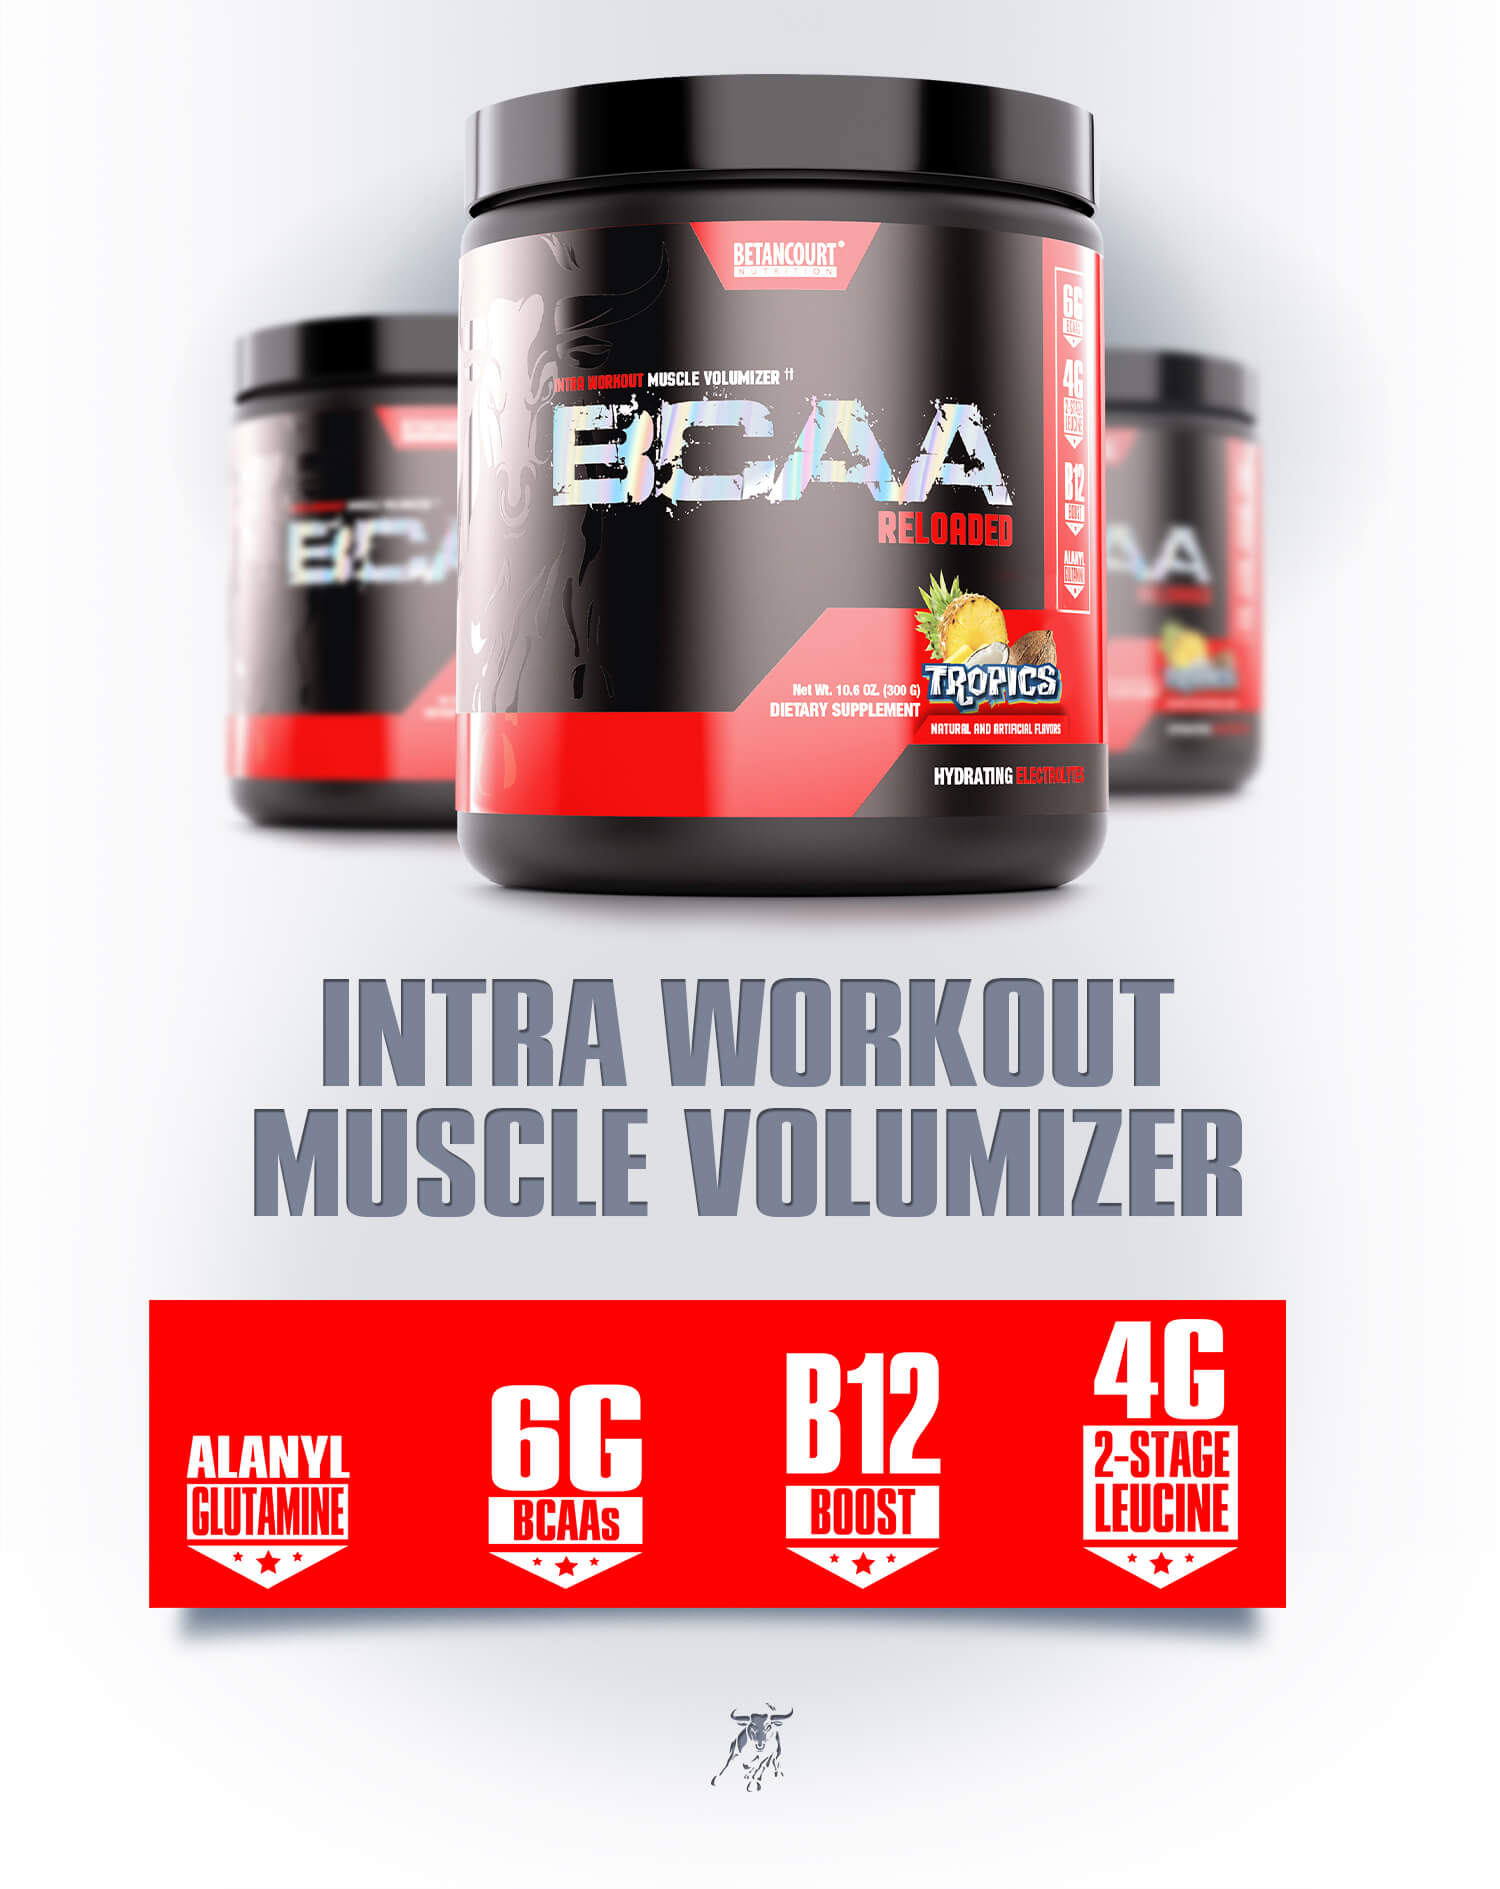 BCAA - Betancourt Nutrition - Intra Workout Muscle Volumizer